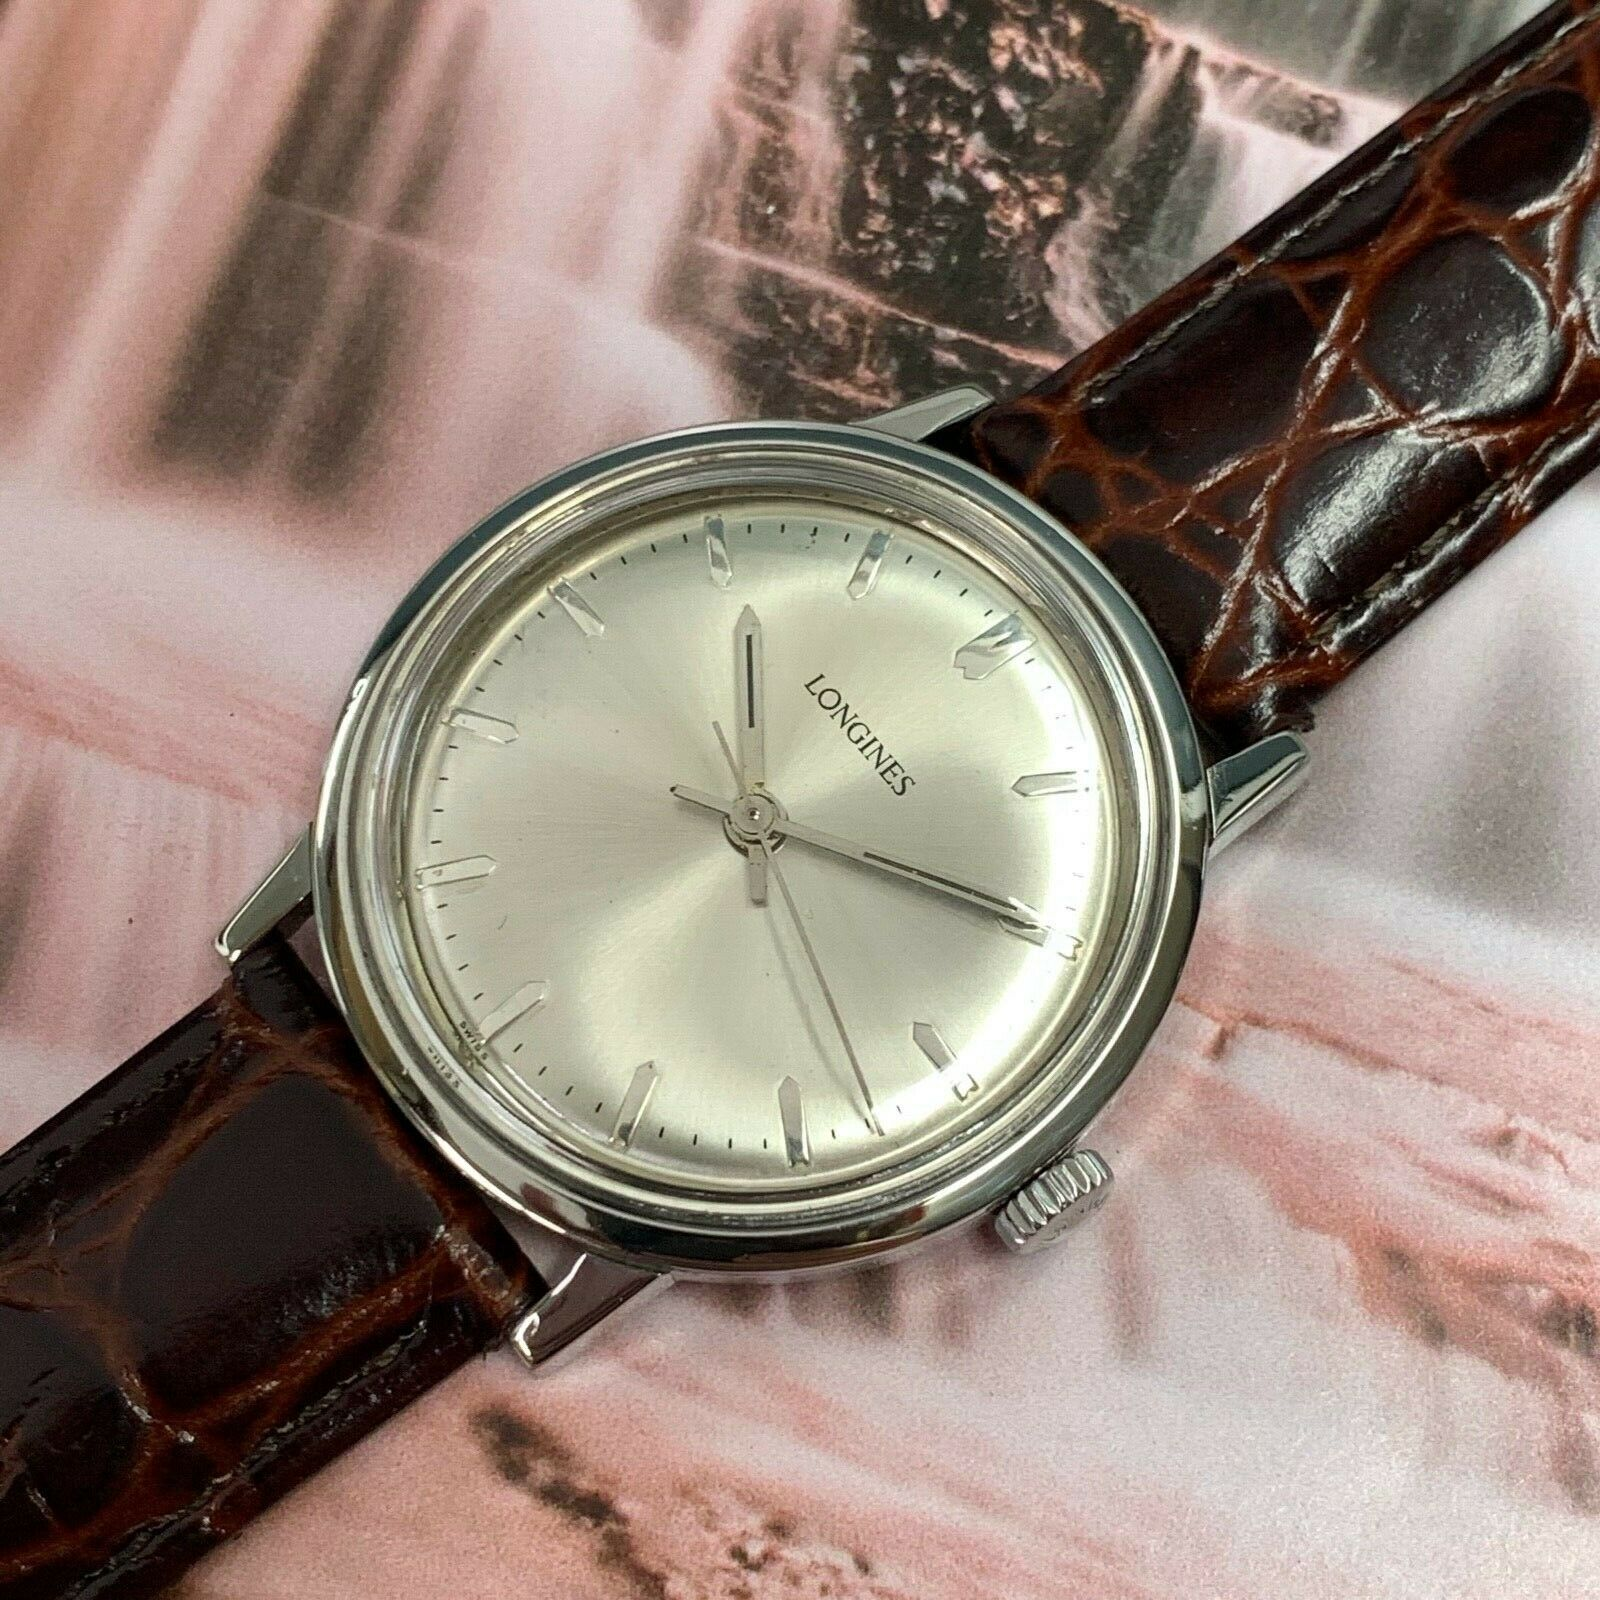 1967 Vintage LONGINES man's wristwatch 17 Jewels Serviced&Warranty AUCTION